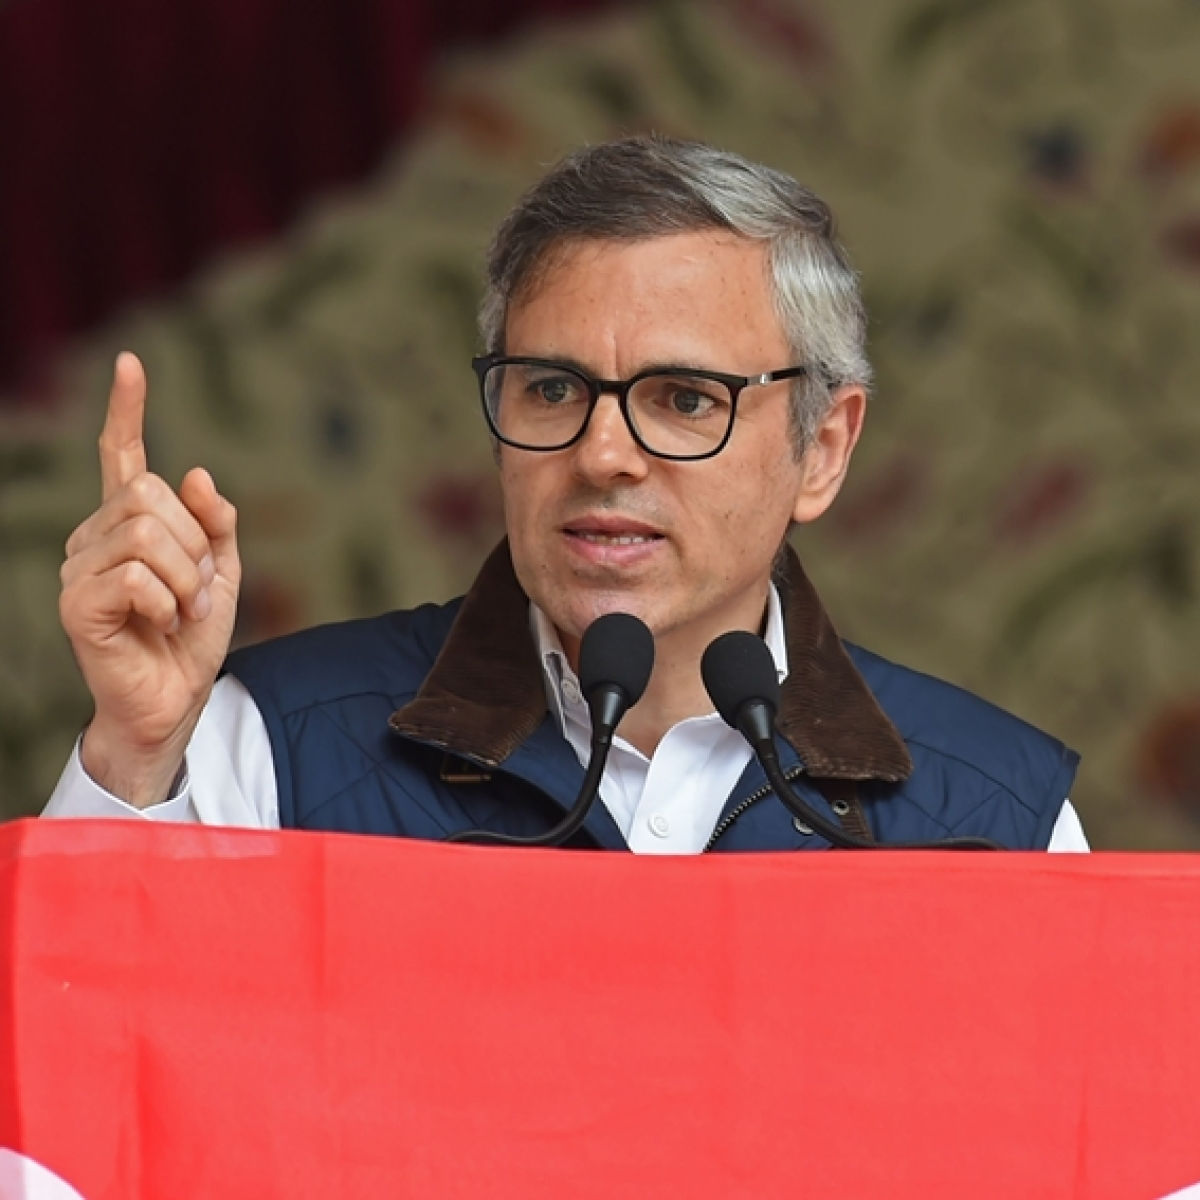 Election candidate shot amid third phase of J&K DDC polls; Omar Abdullah condemns 'disturbing' incident